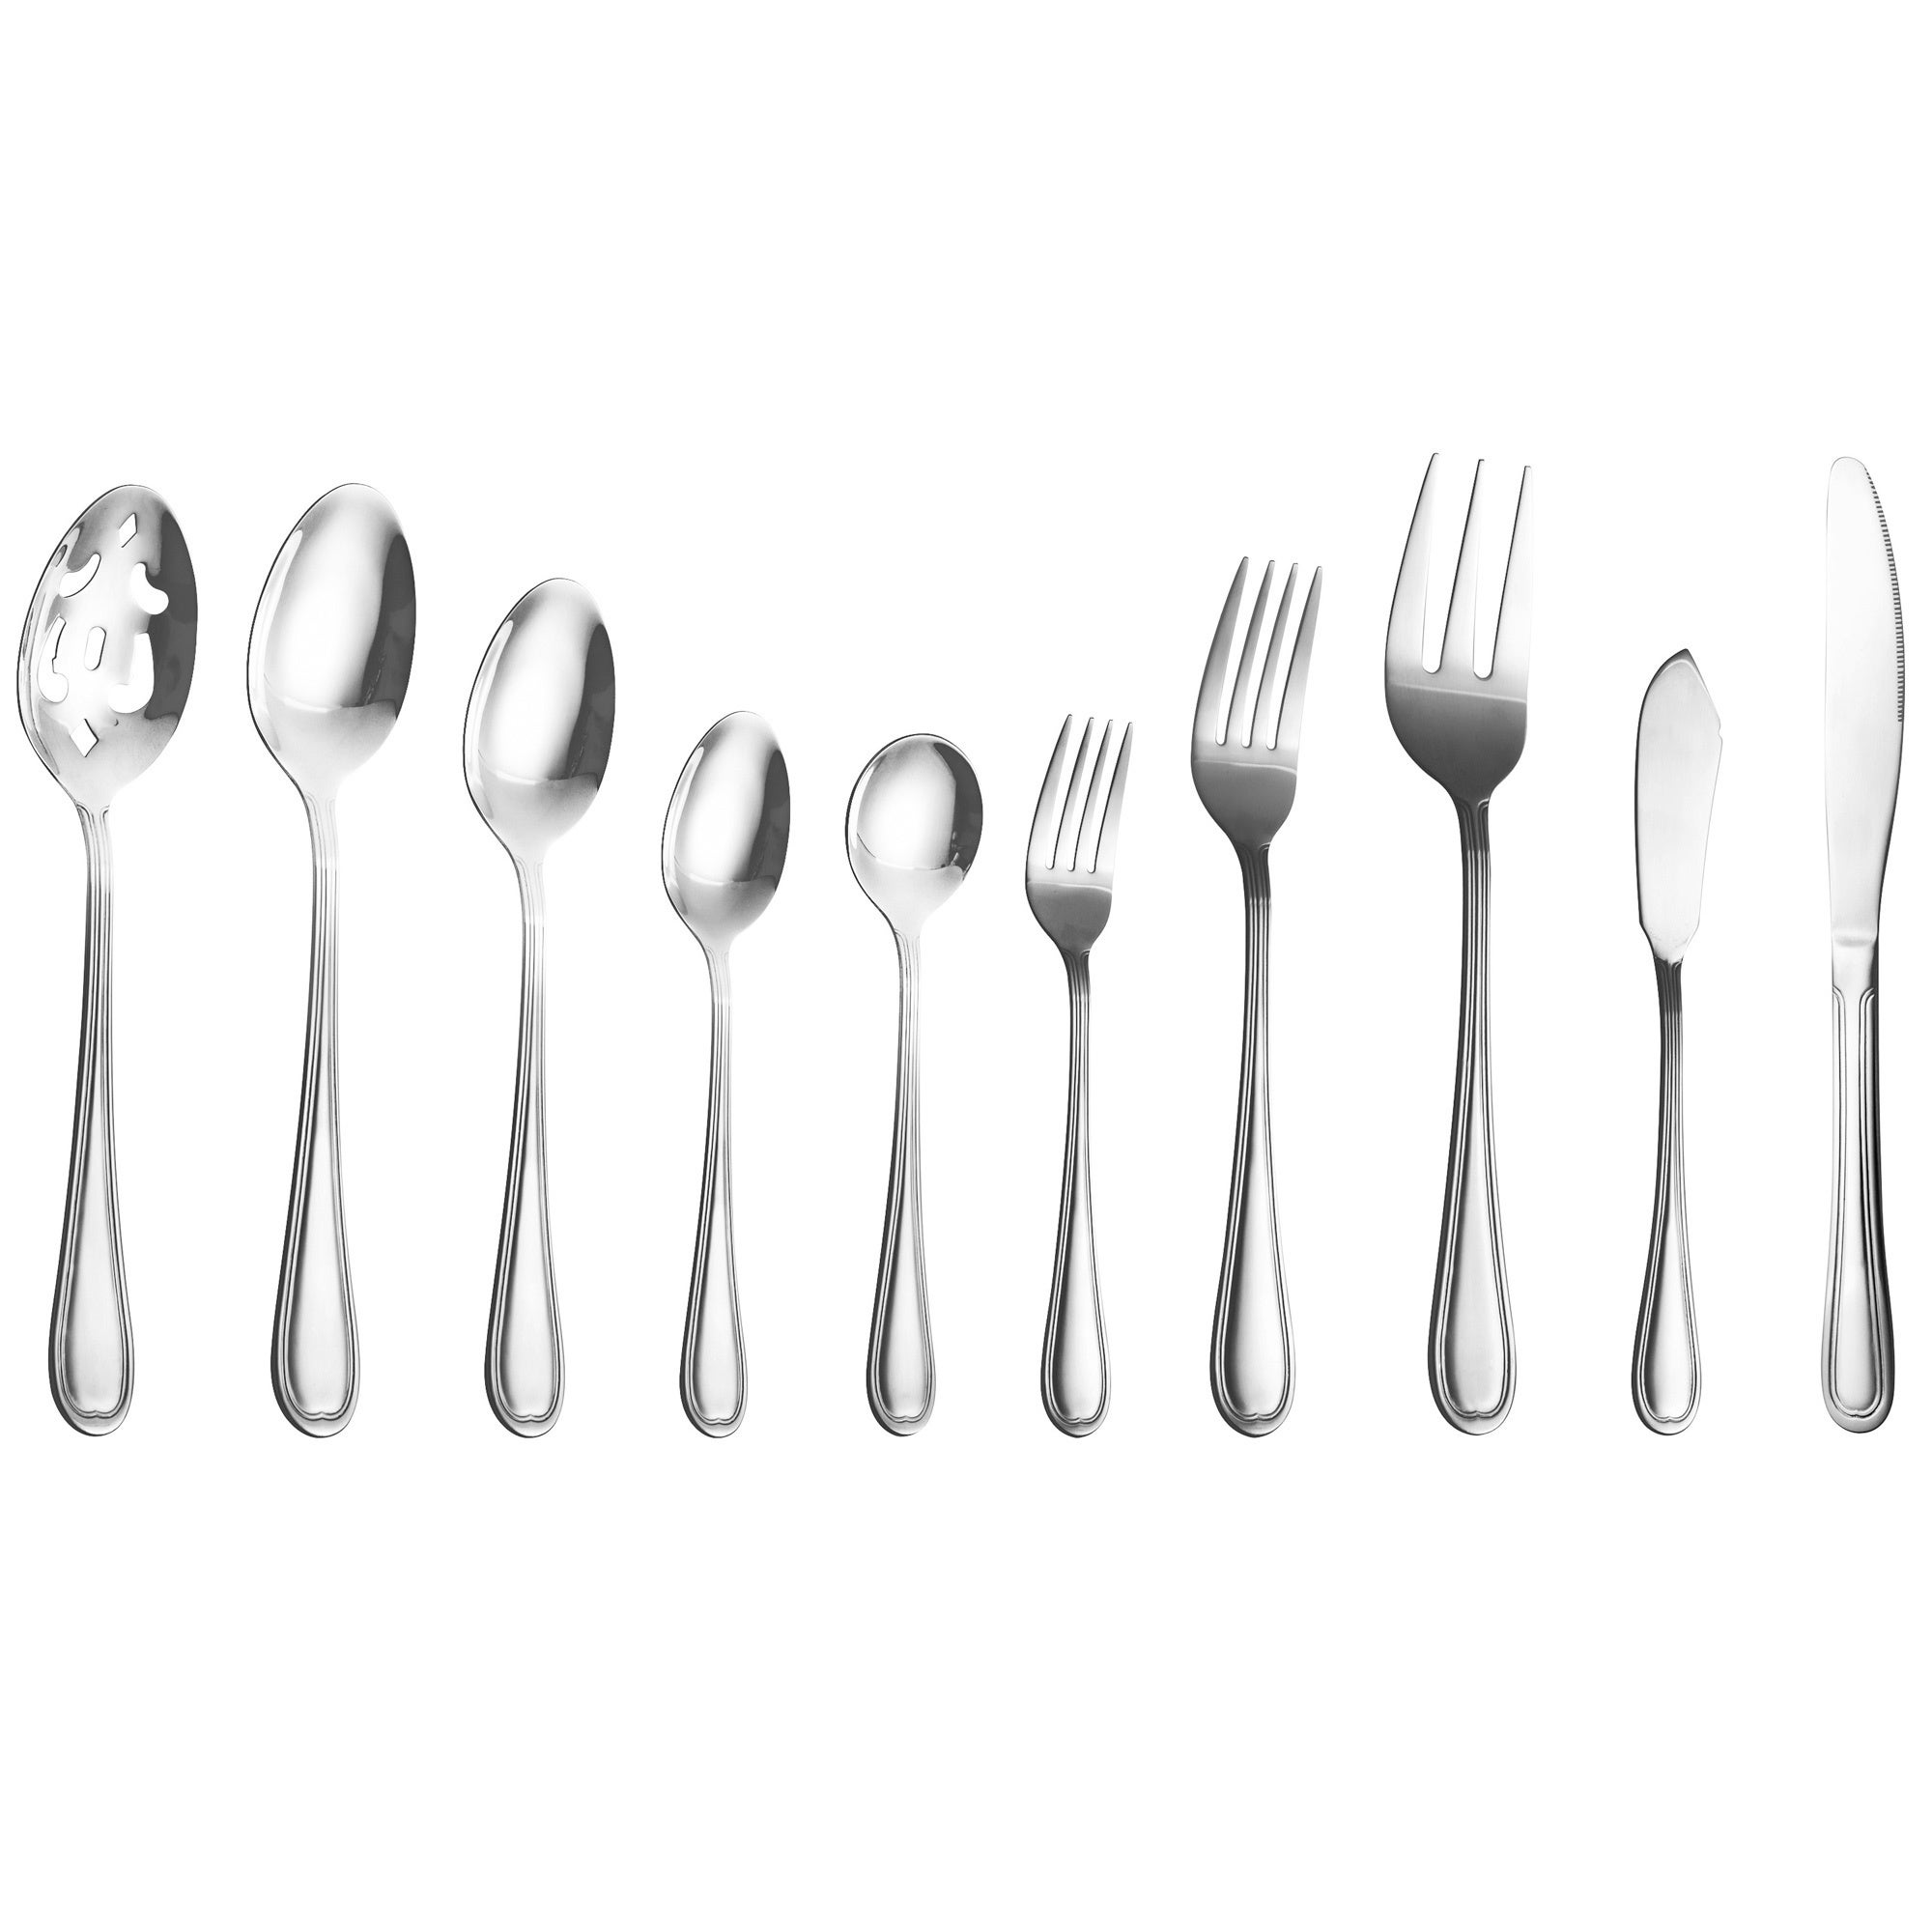 Overstock.com Contemporary Stainless Steel 45-piece Silverware Set at Sears.com